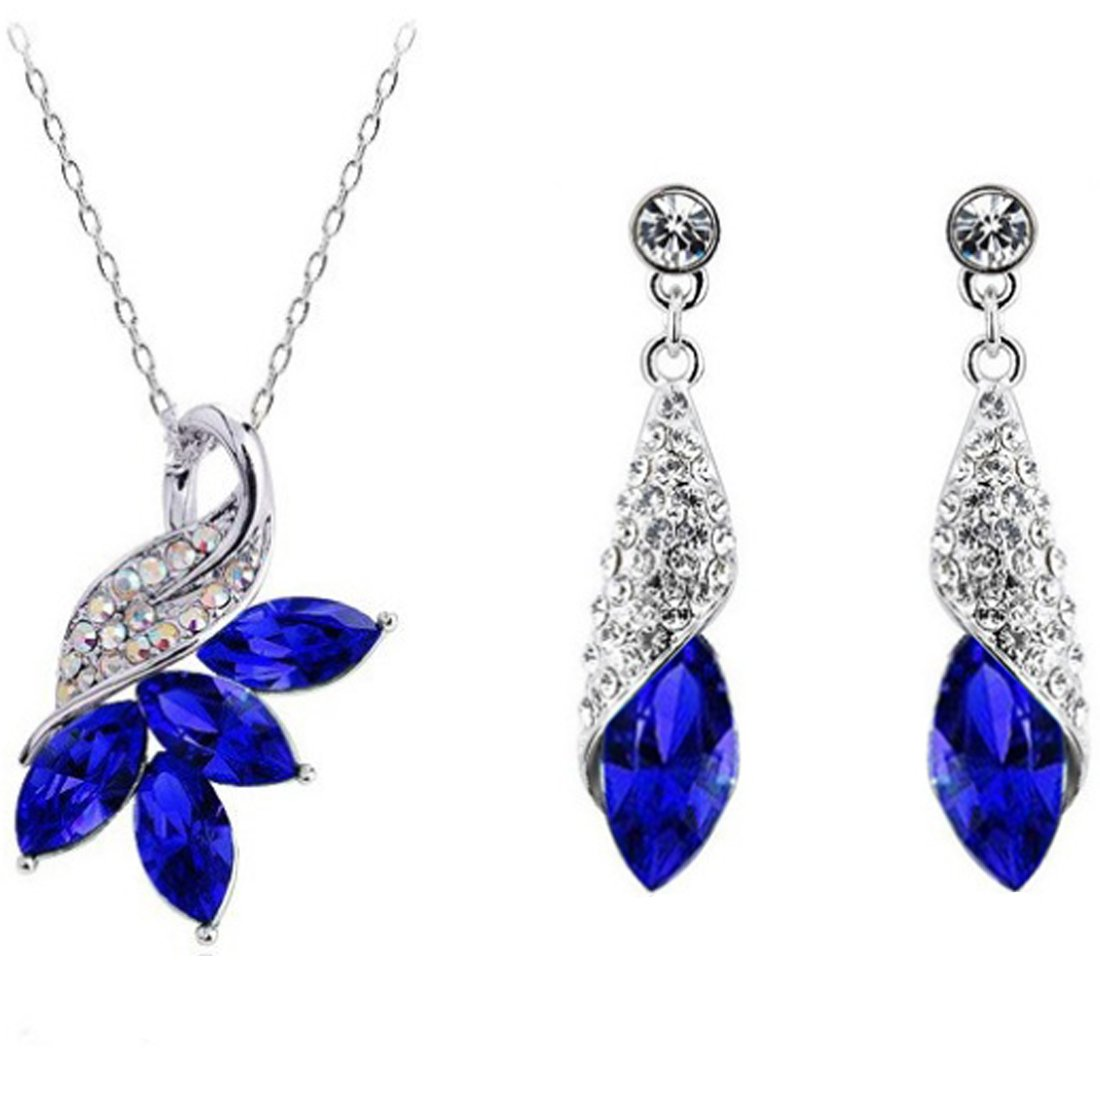 MAFMO Exquisite Austria Crystal Maple Leaf Necklace Earrings 2pcs Jewelry Set (Royal Blue)